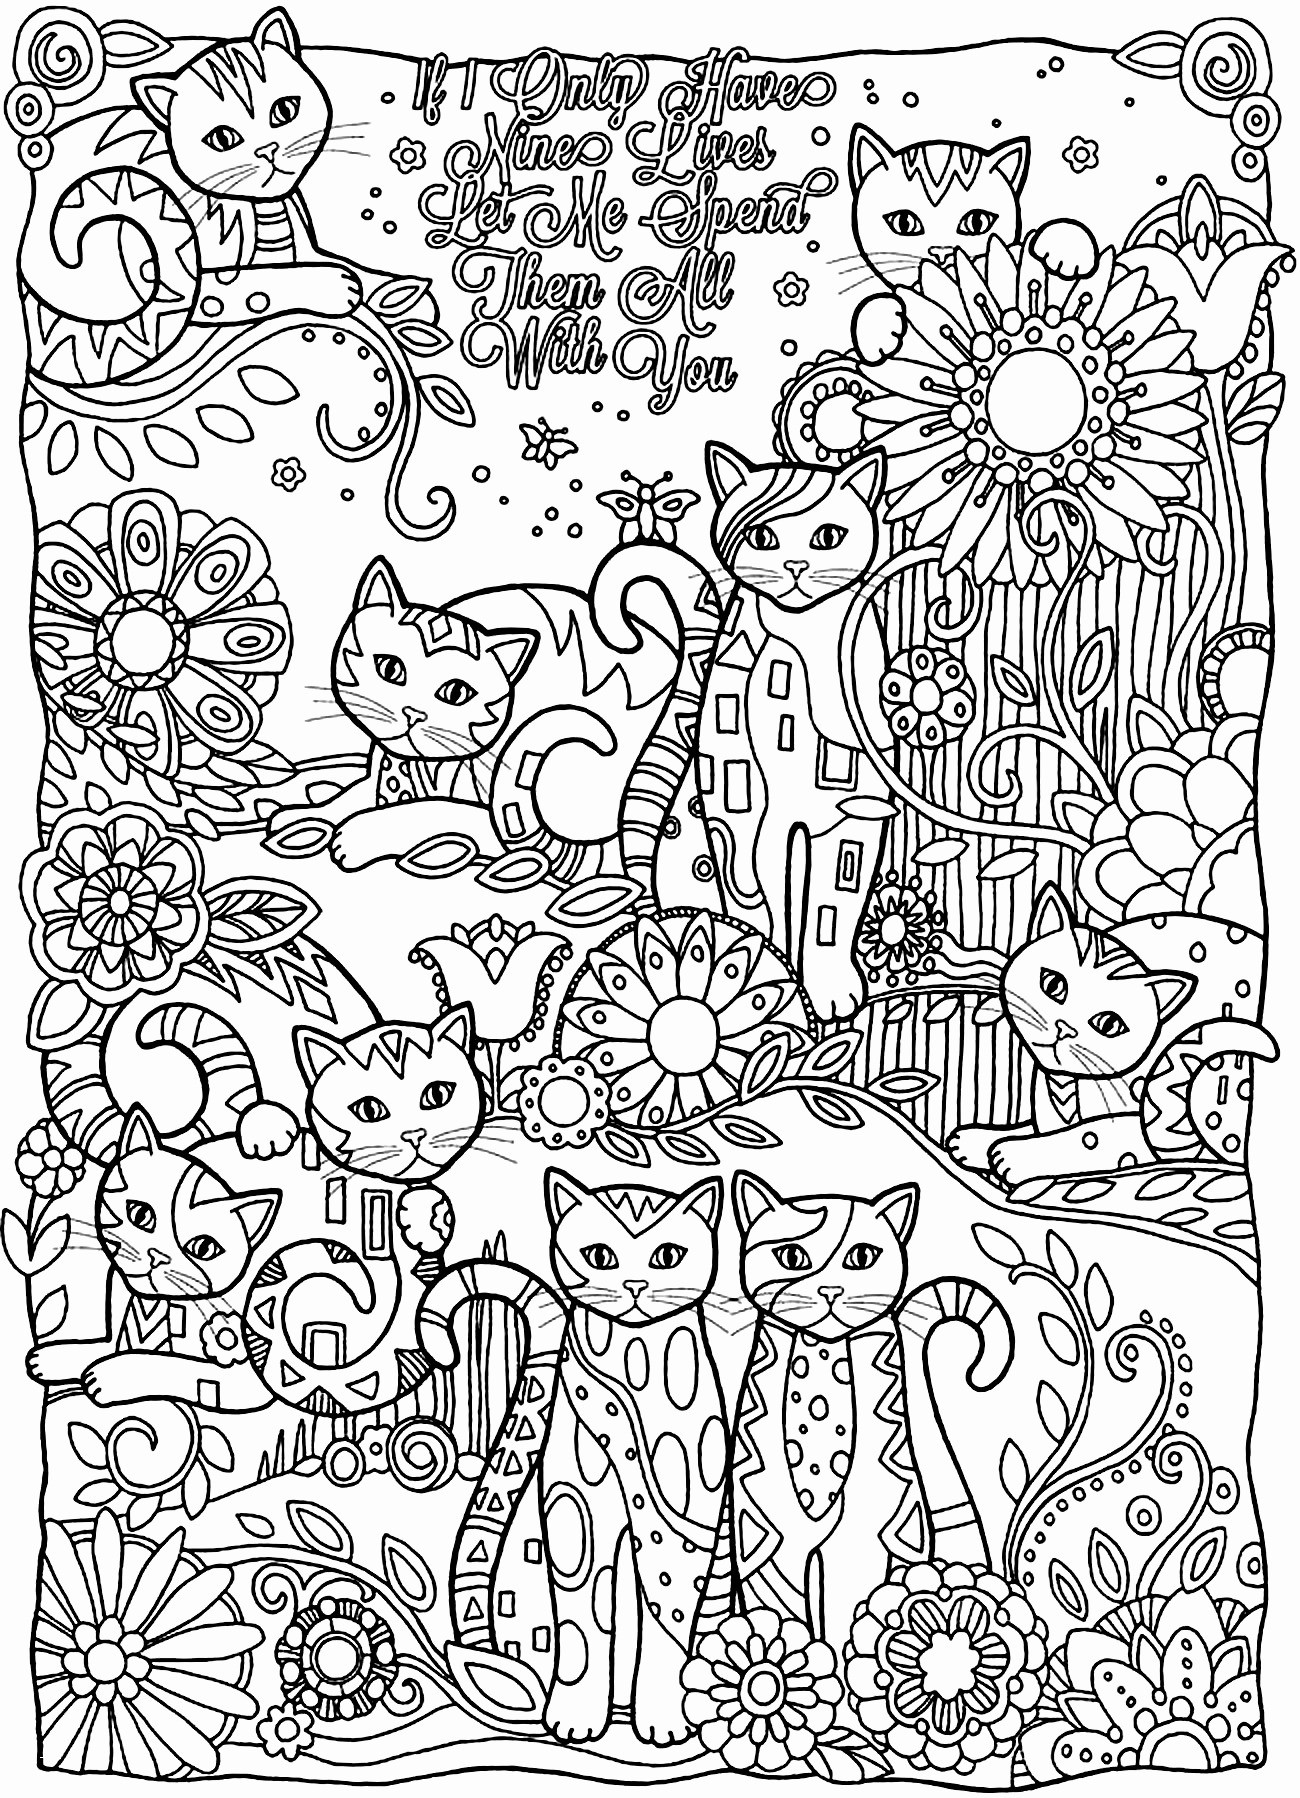 March Calendar Coloring Page Más Recientes Free Printable Coloring Pages for Kindergarten Heathermarxgallery Of March Calendar Coloring Page Más Reciente Free Printable Minion Invitations Free Minion Coloring Pages Awesome